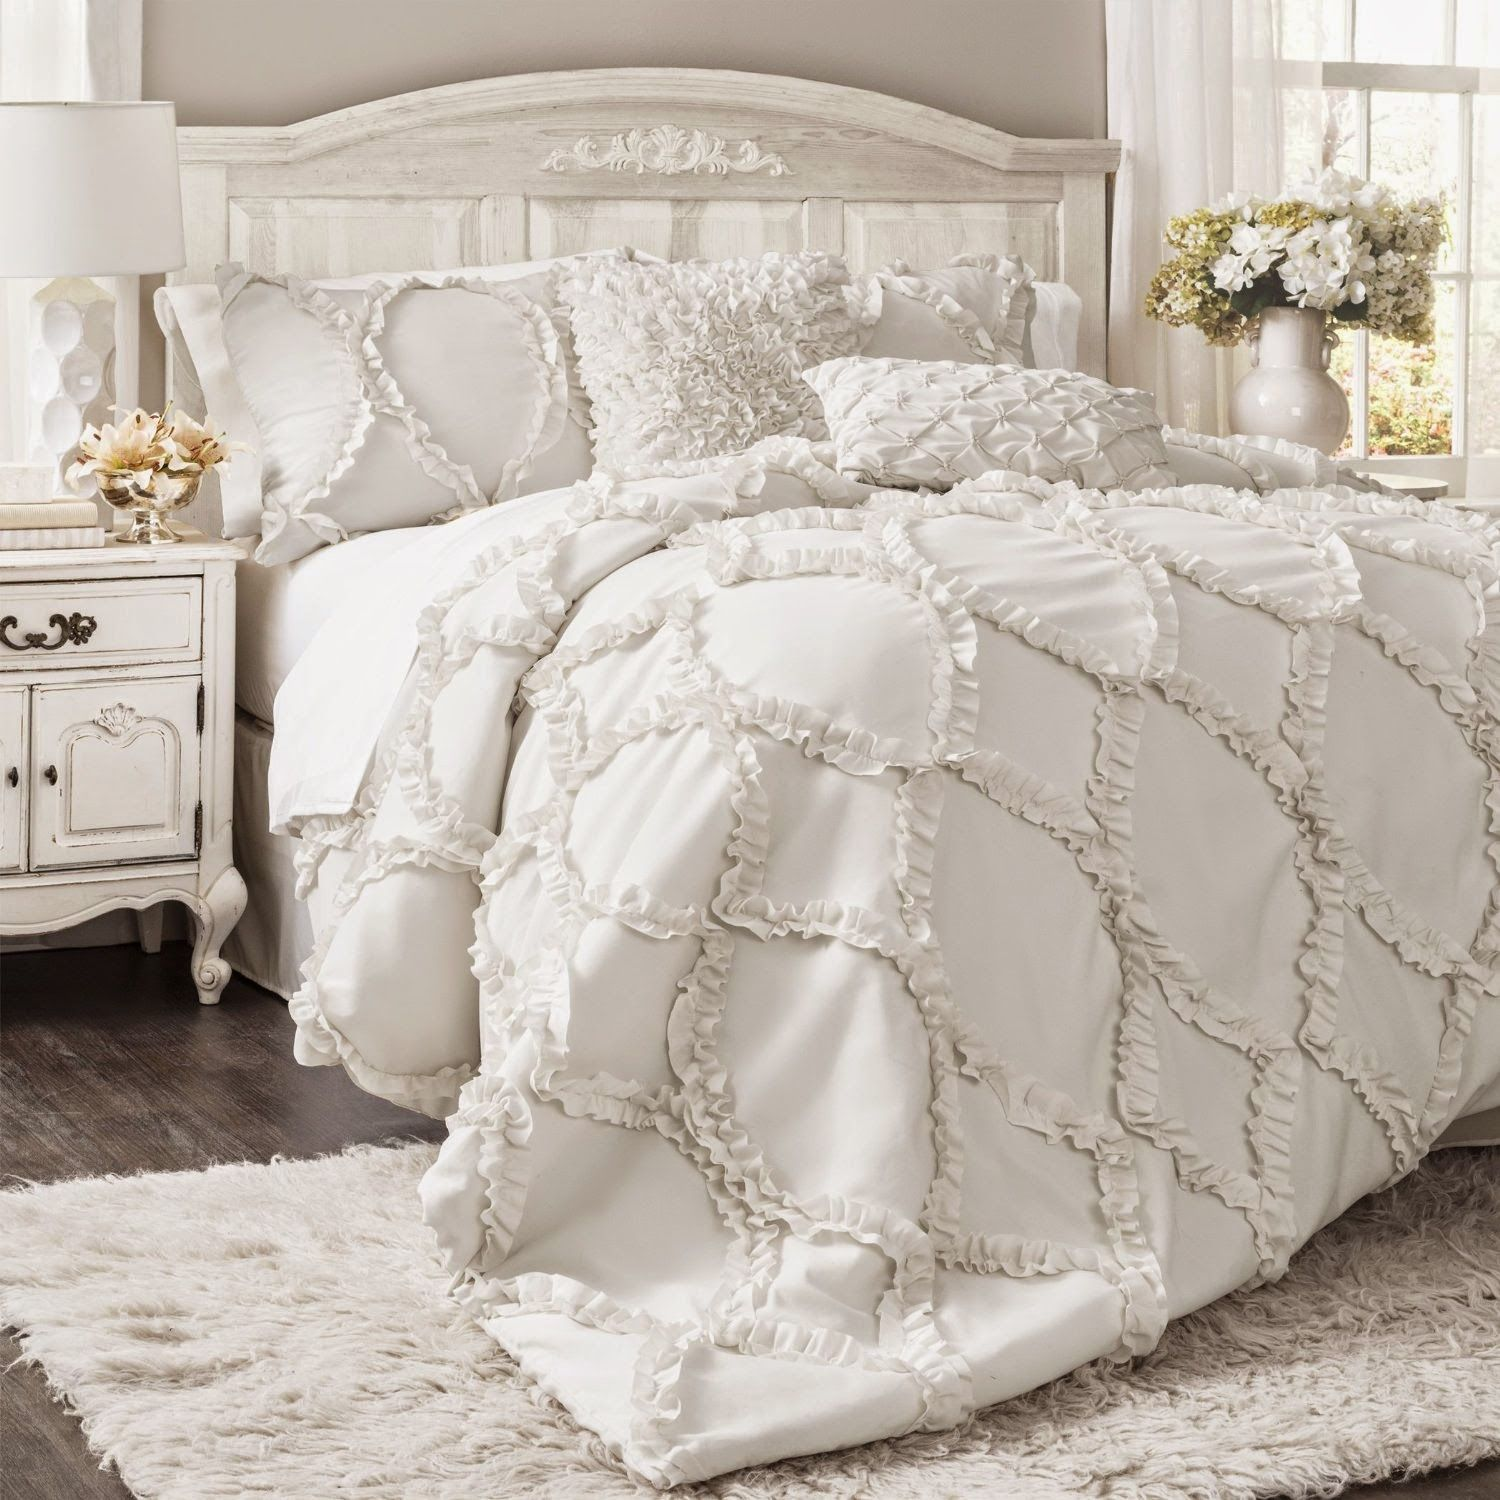 13 Bedding Sets That Won\'t Break The Budget | Bedrooms, Master ...